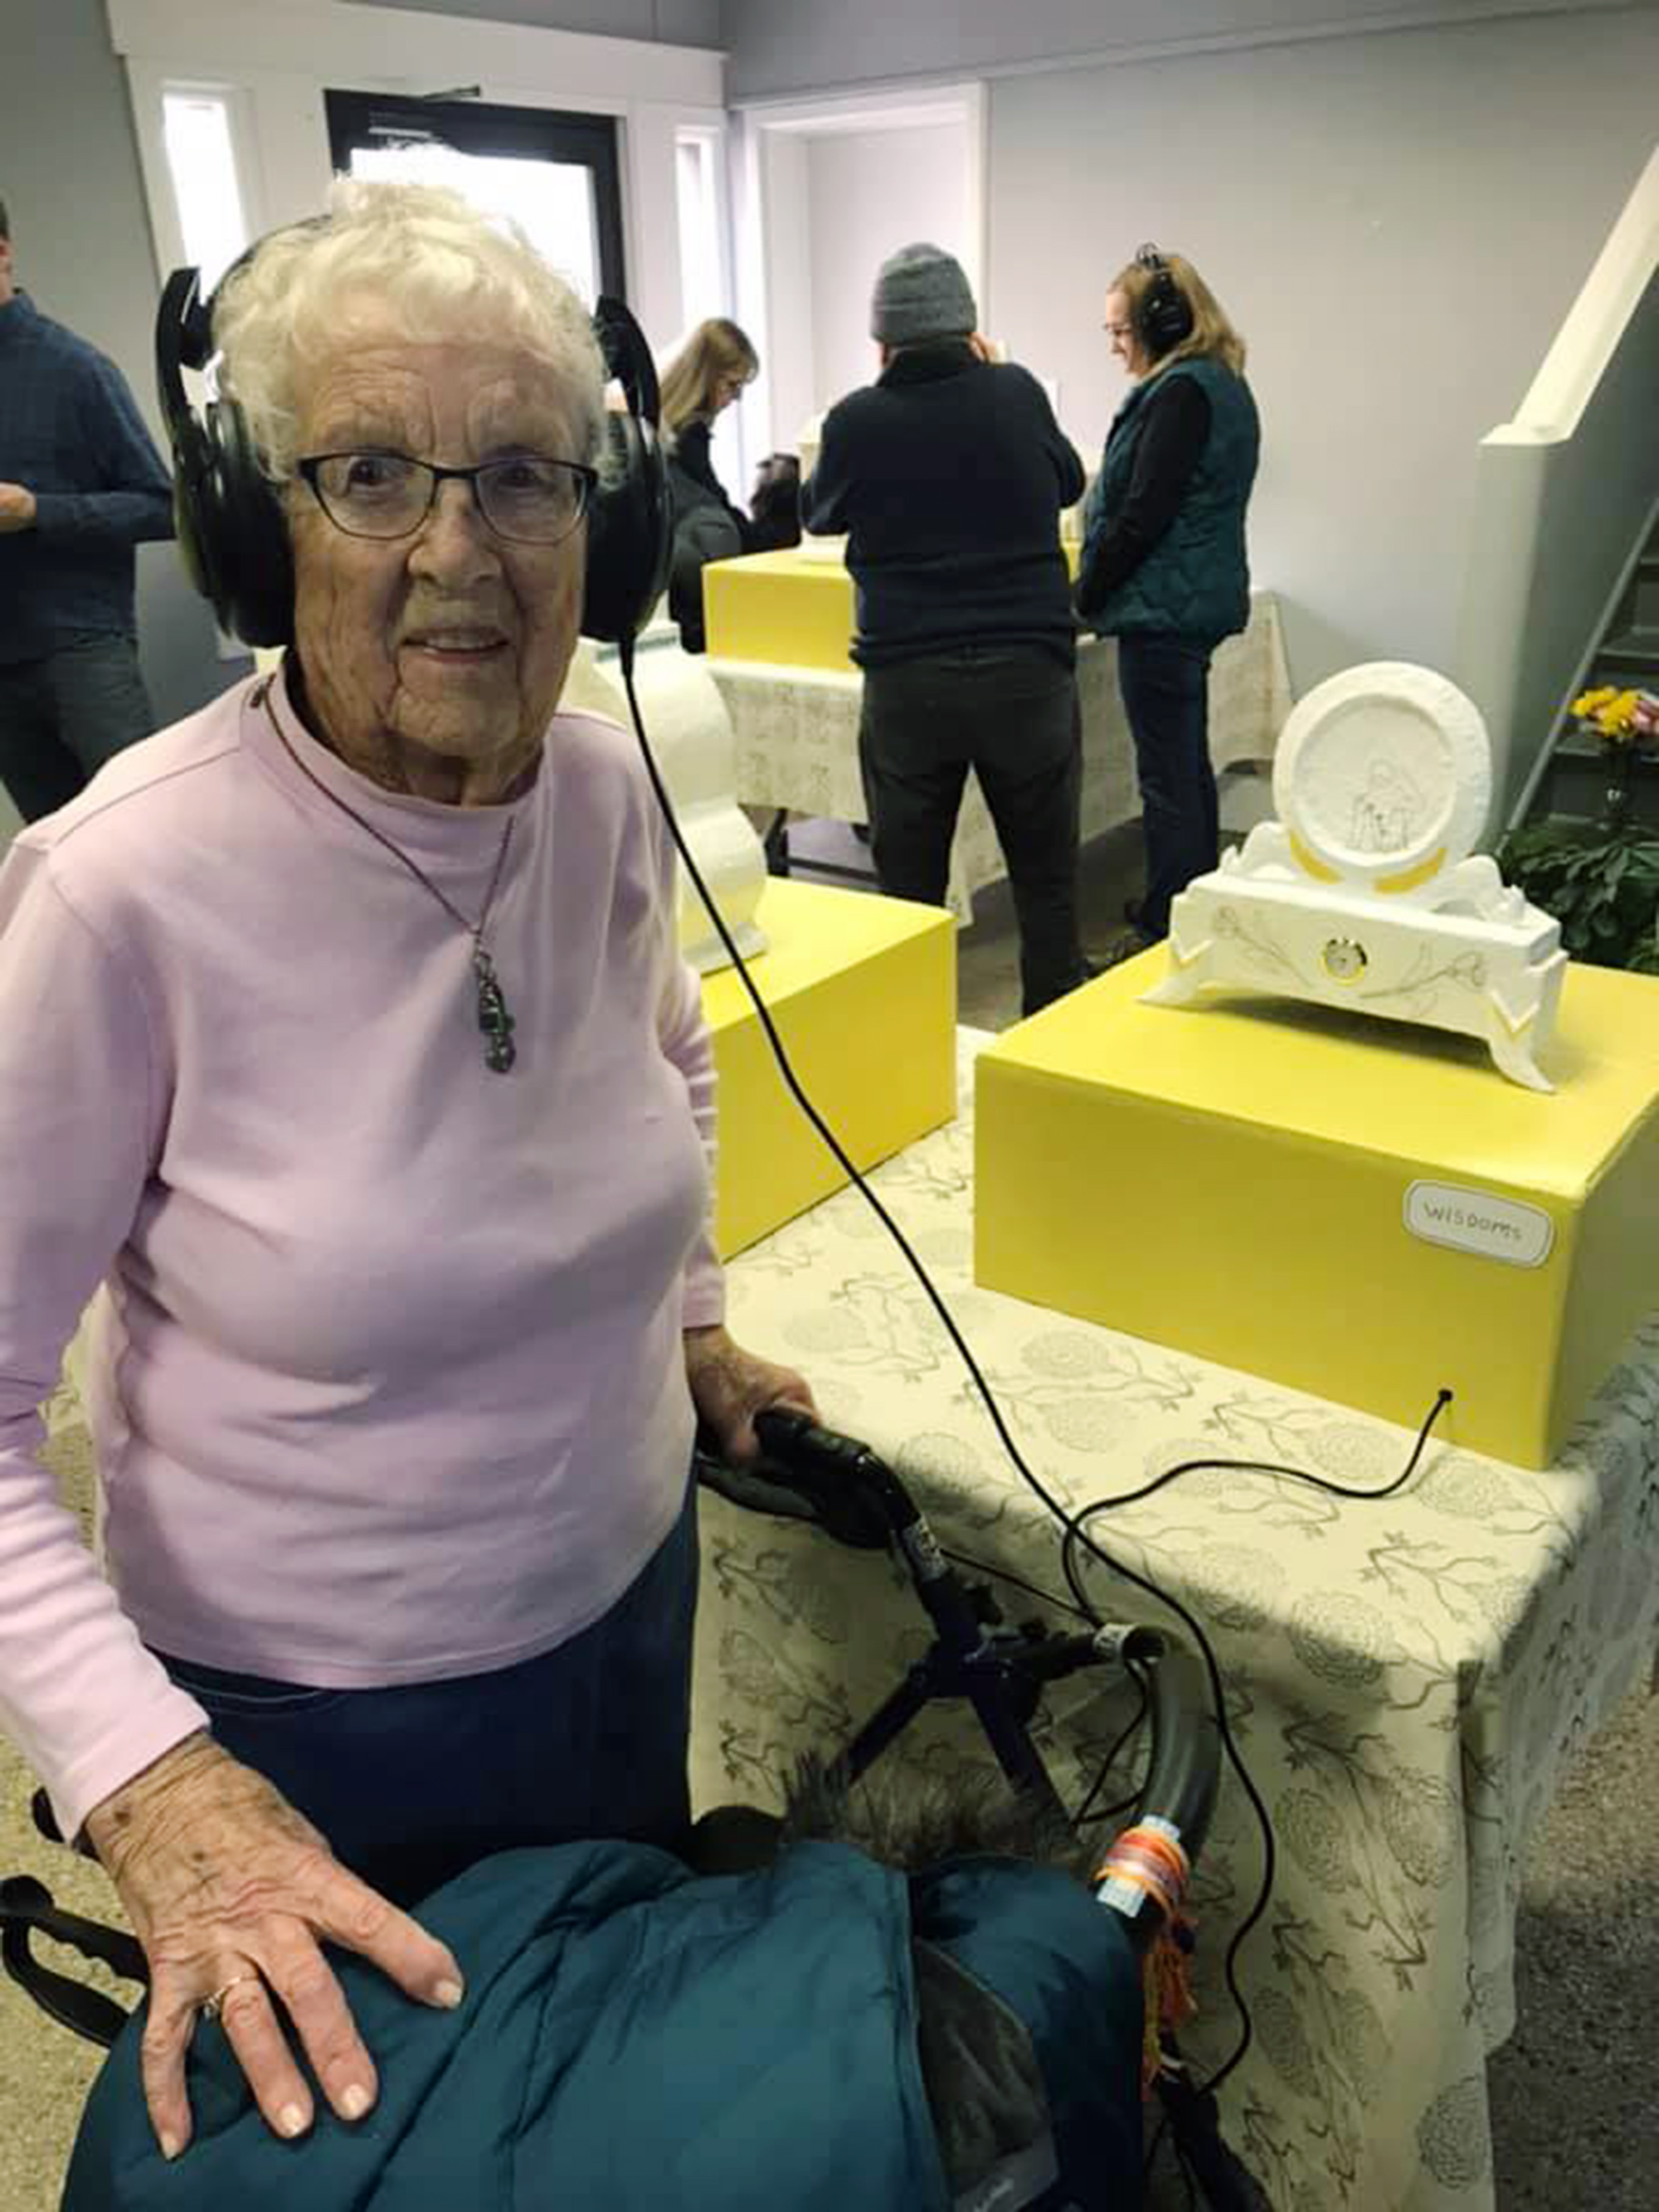 Time Sensitive acknowledges the importance of preserving memories and stories, especially those of the elderly population. 8 papier-mâché clocks act as time capsules and listening stations for audio, sharing stories and memories of the elderly. 103 year old Evie takes a listen.